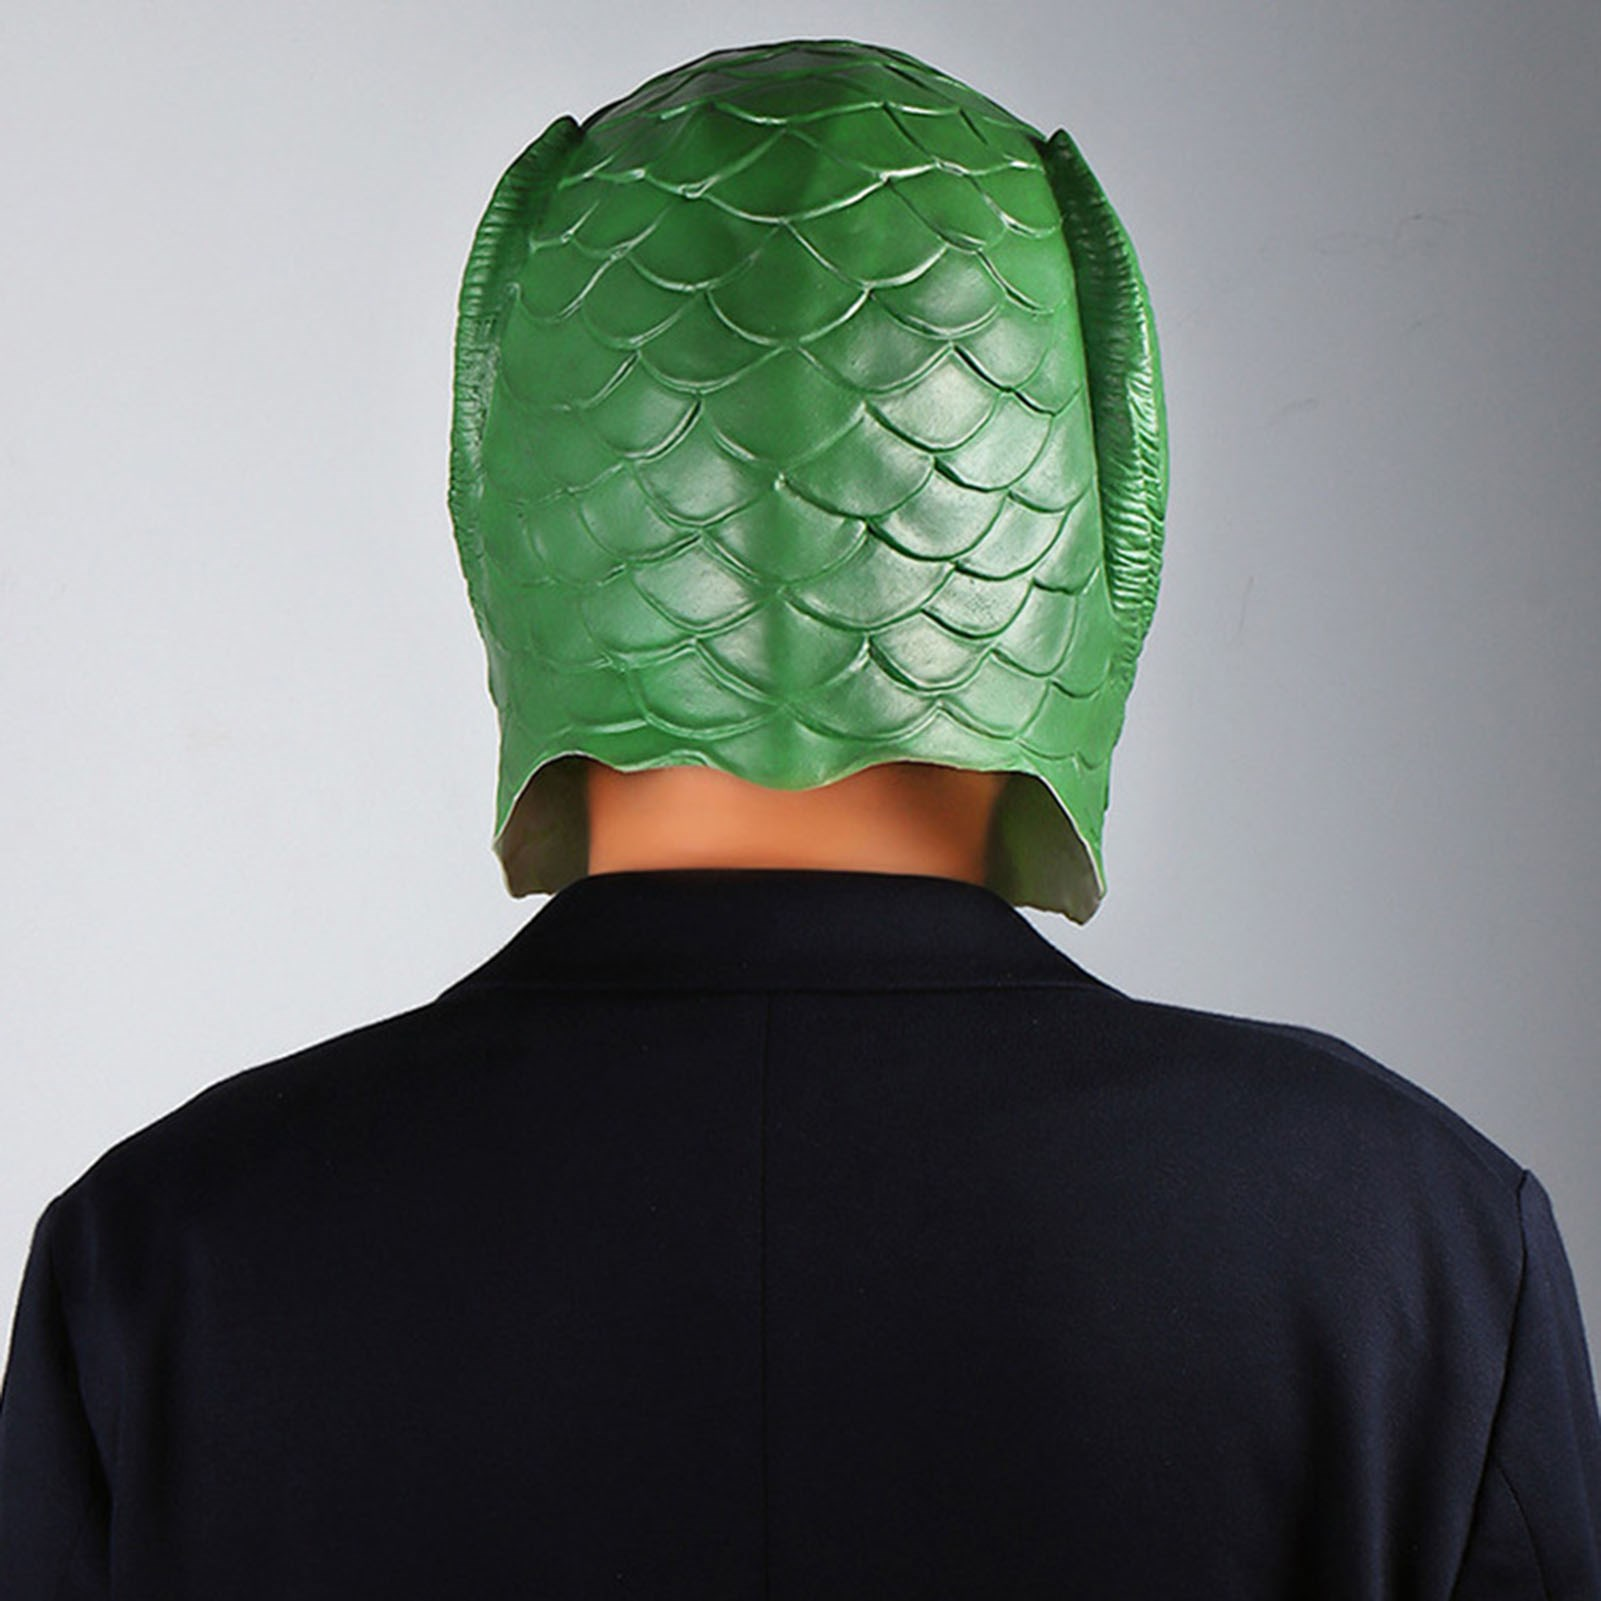 Green fish head mask full face animal lizard horror monster fish mouth head set Halloween DJ role-playing props